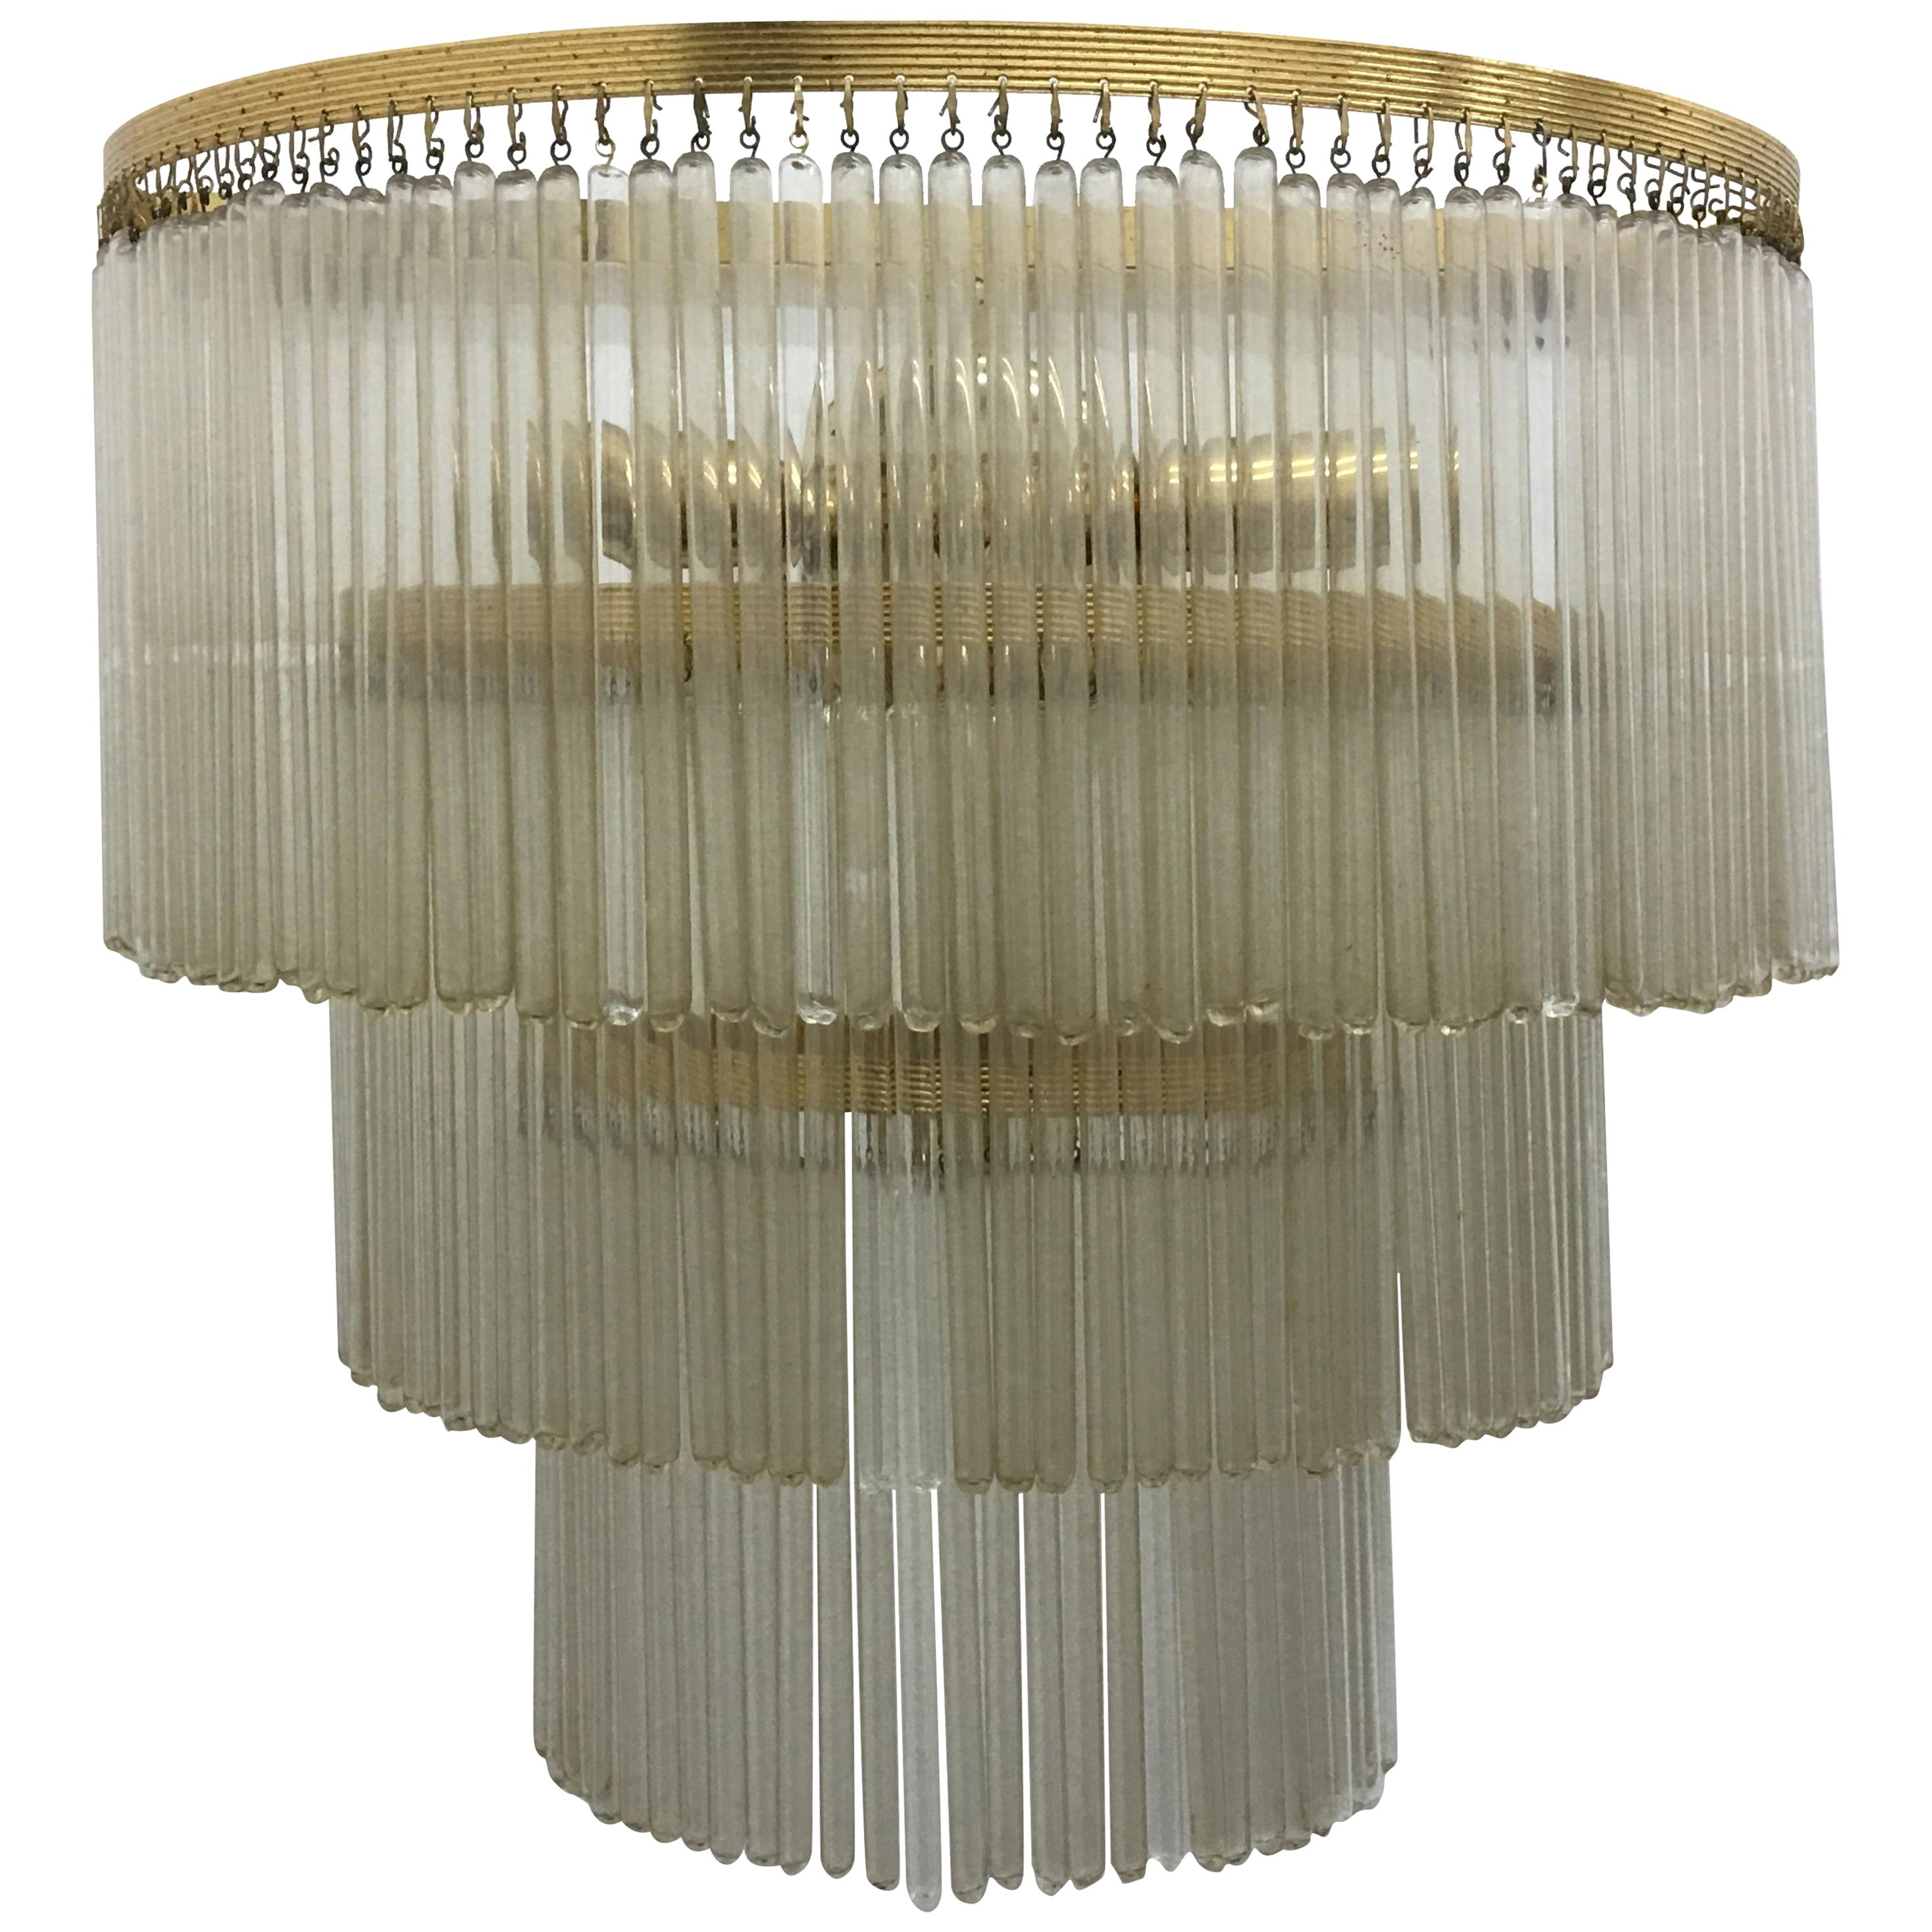 Mid-Century Modern Brass and Glass Huge Wall Sconce, Italy, 1950